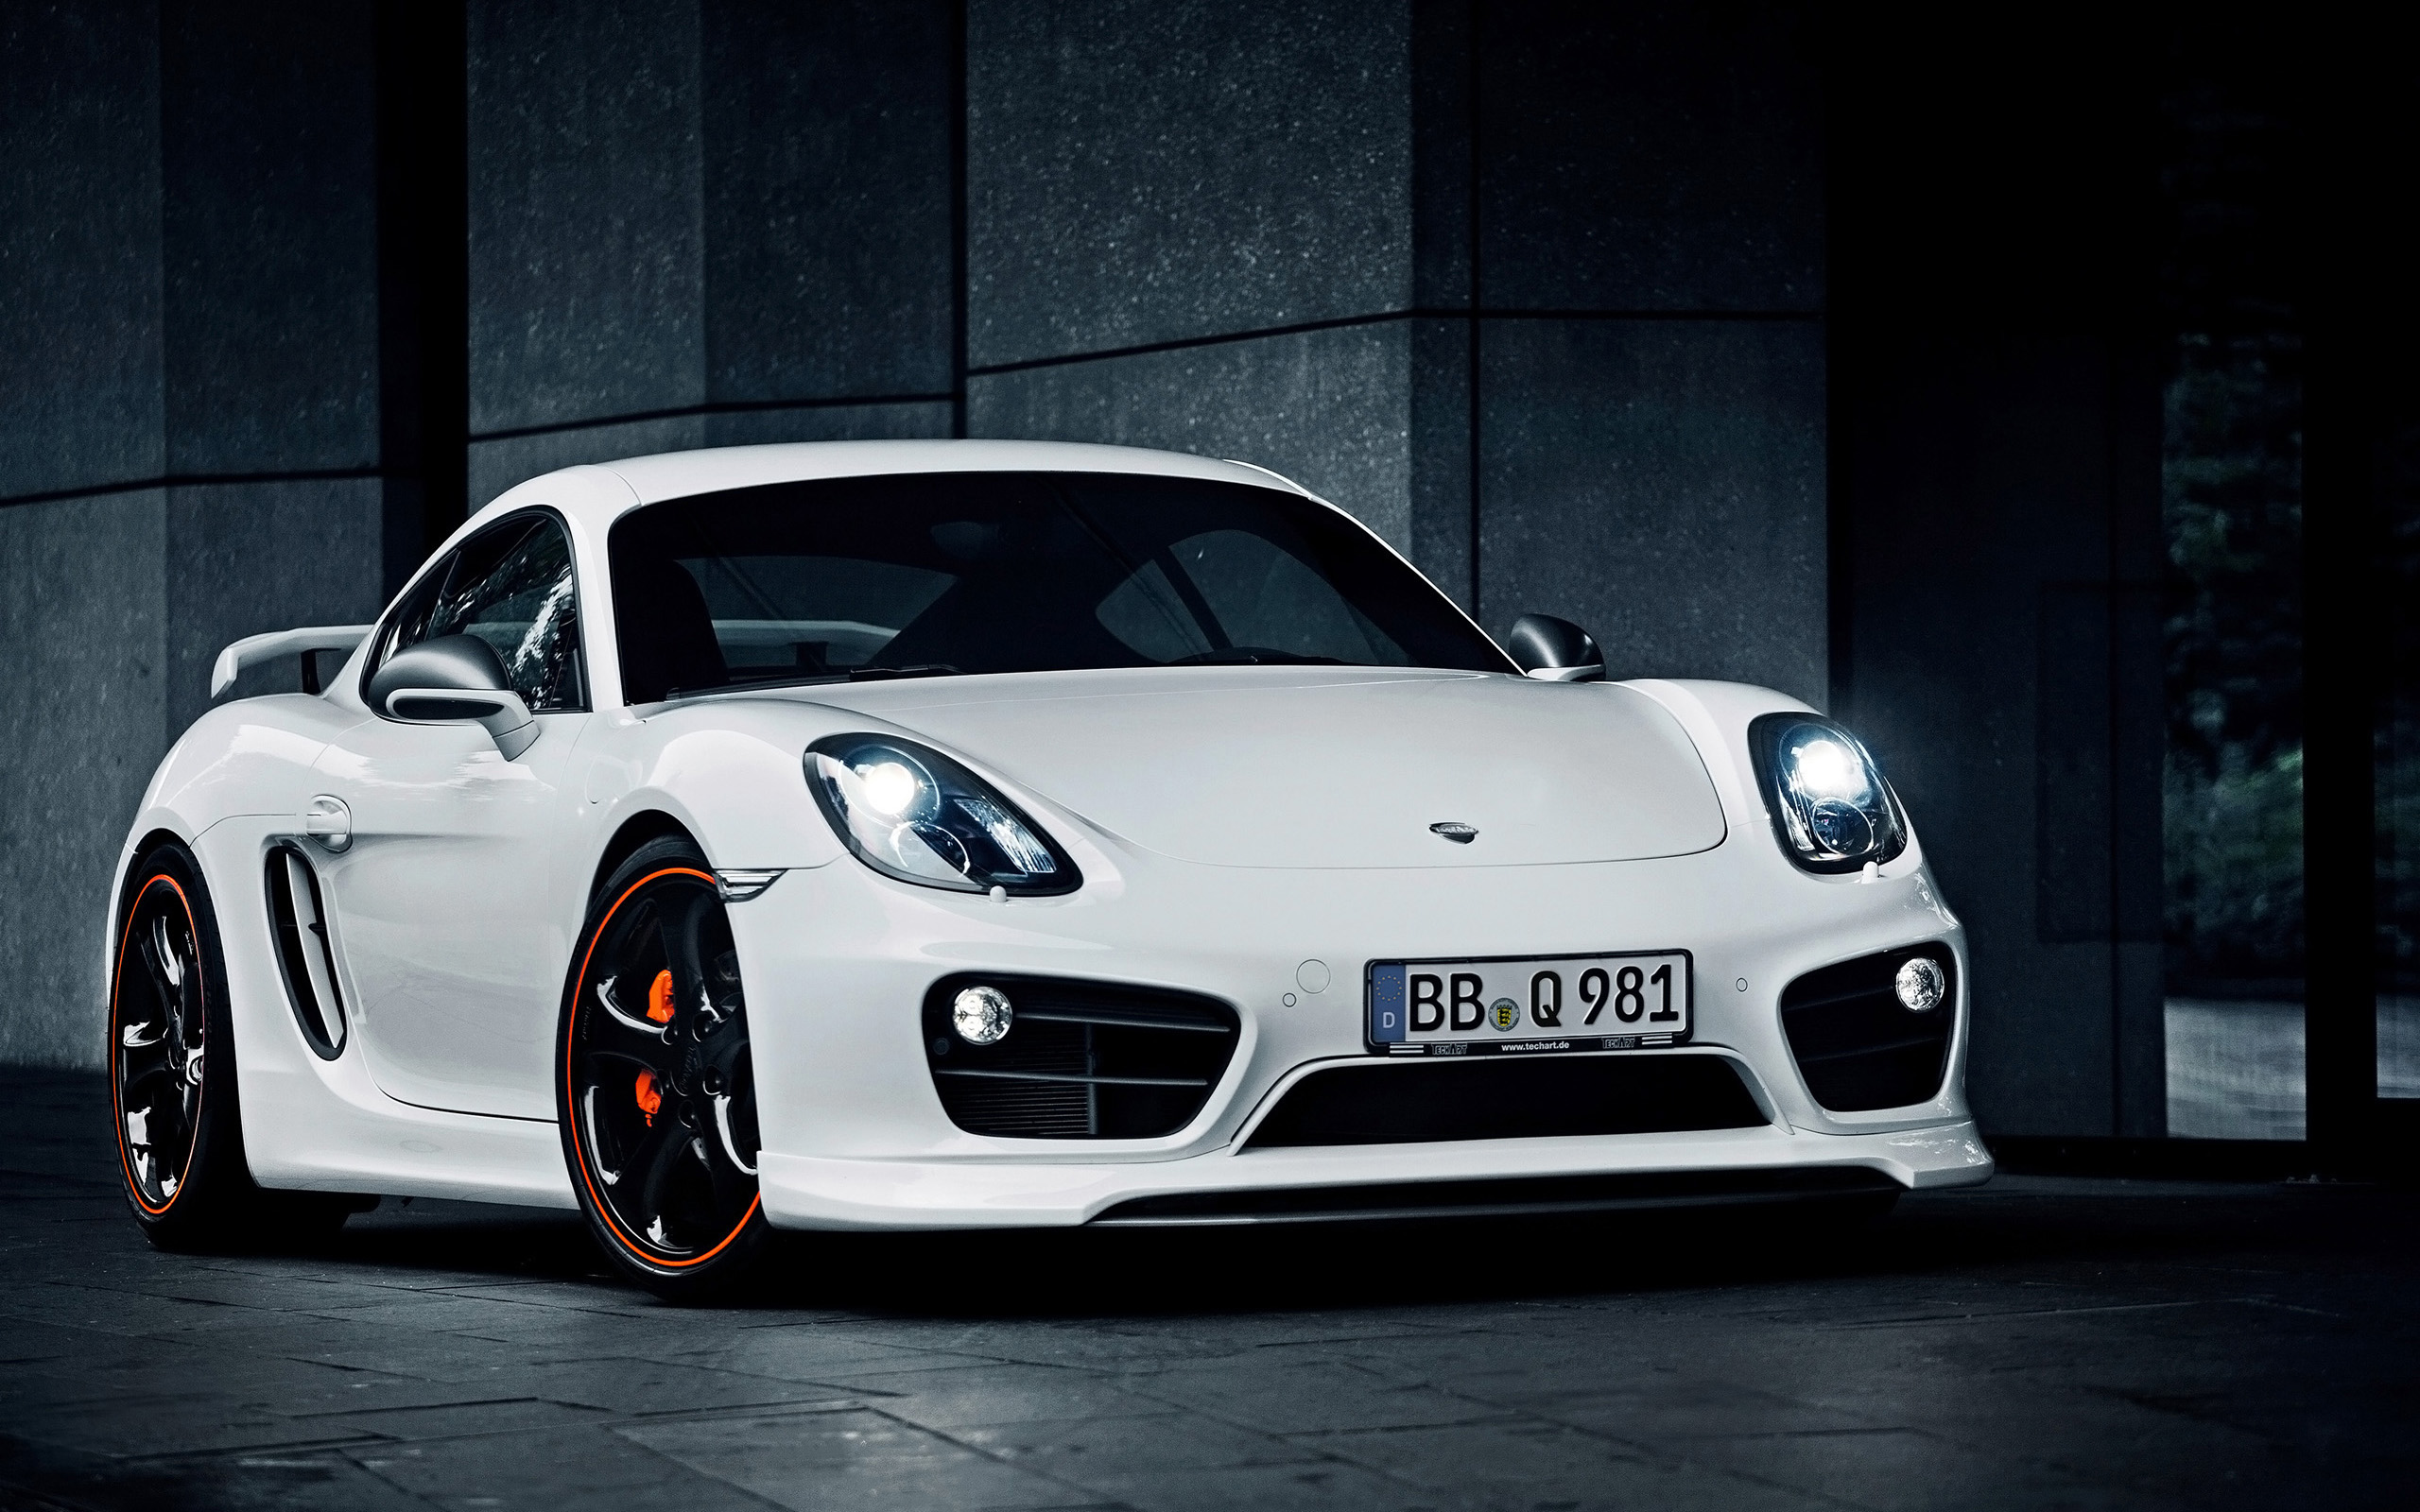 techart porsche cayman 2014 wallpaper | hd car wallpapers | id #3920